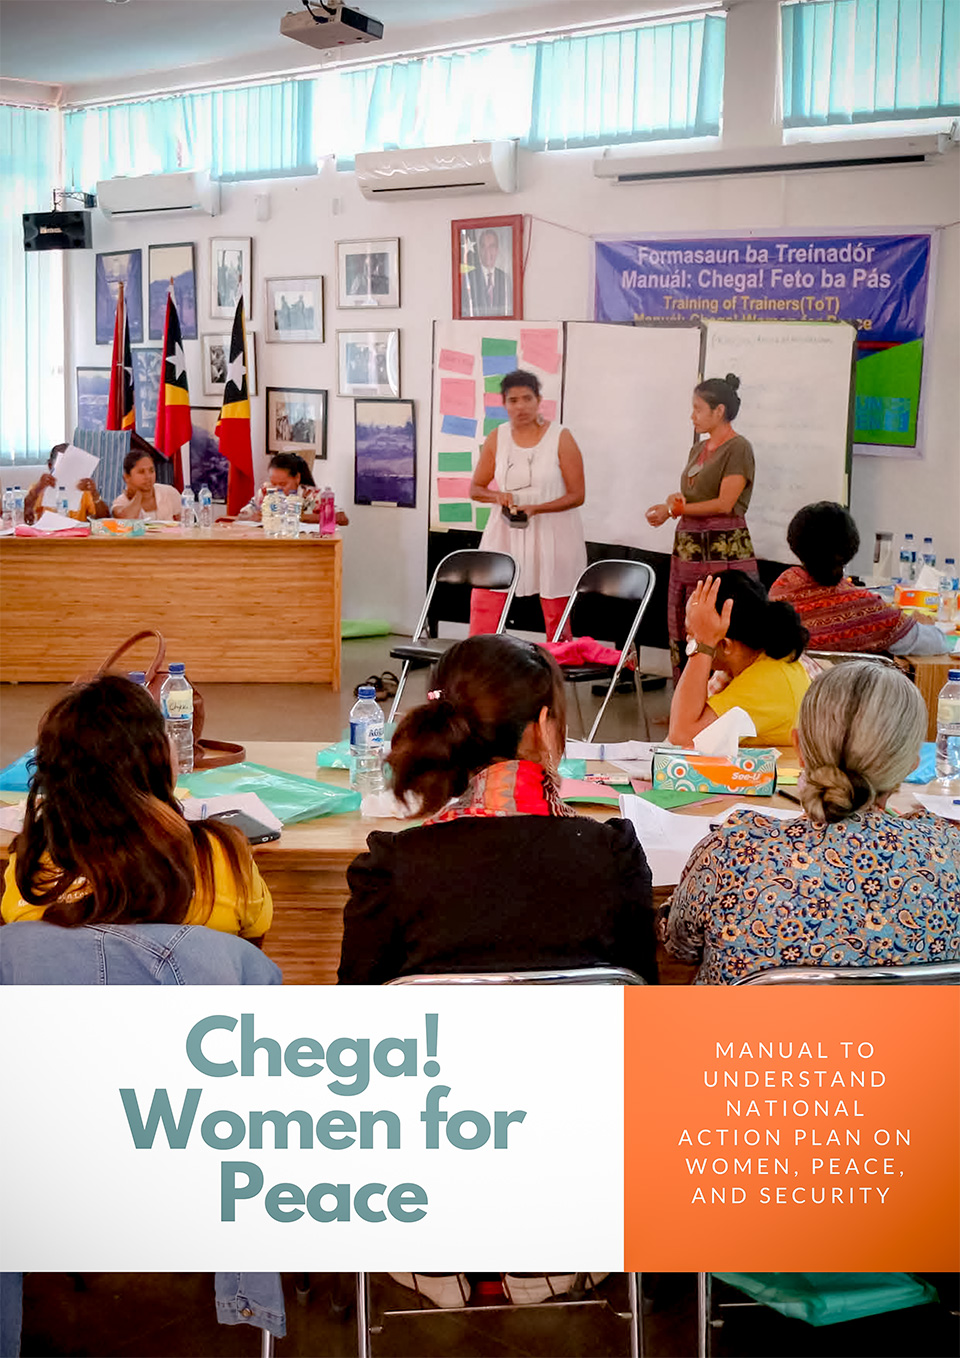 Chega! Women for Peace – A Manual to Understand the UNSCR 1325